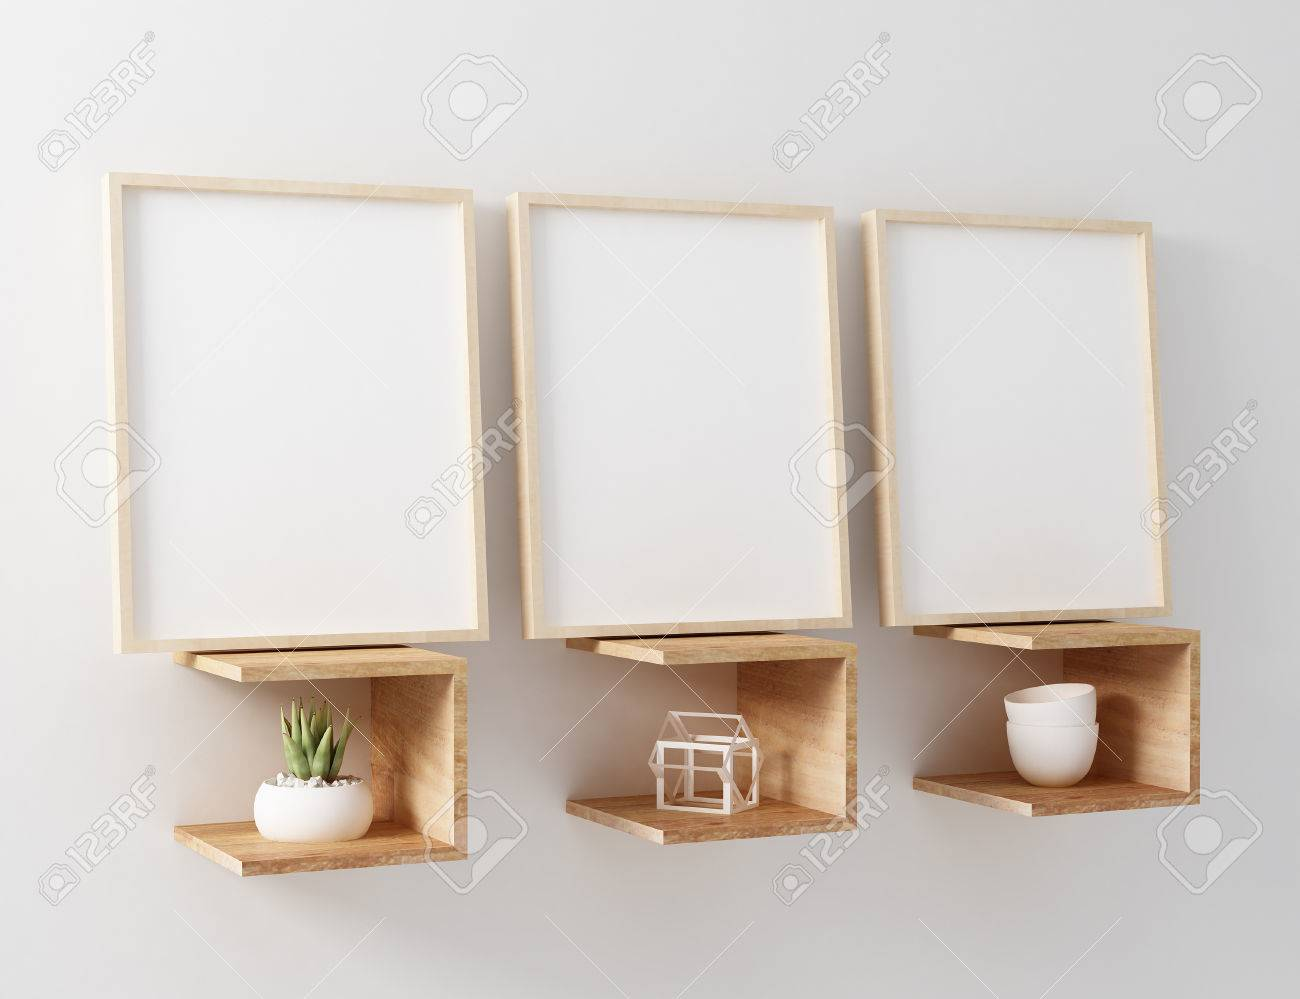 3 Blank Frame Mockup Stock Photo, Picture And Royalty Free Image ...